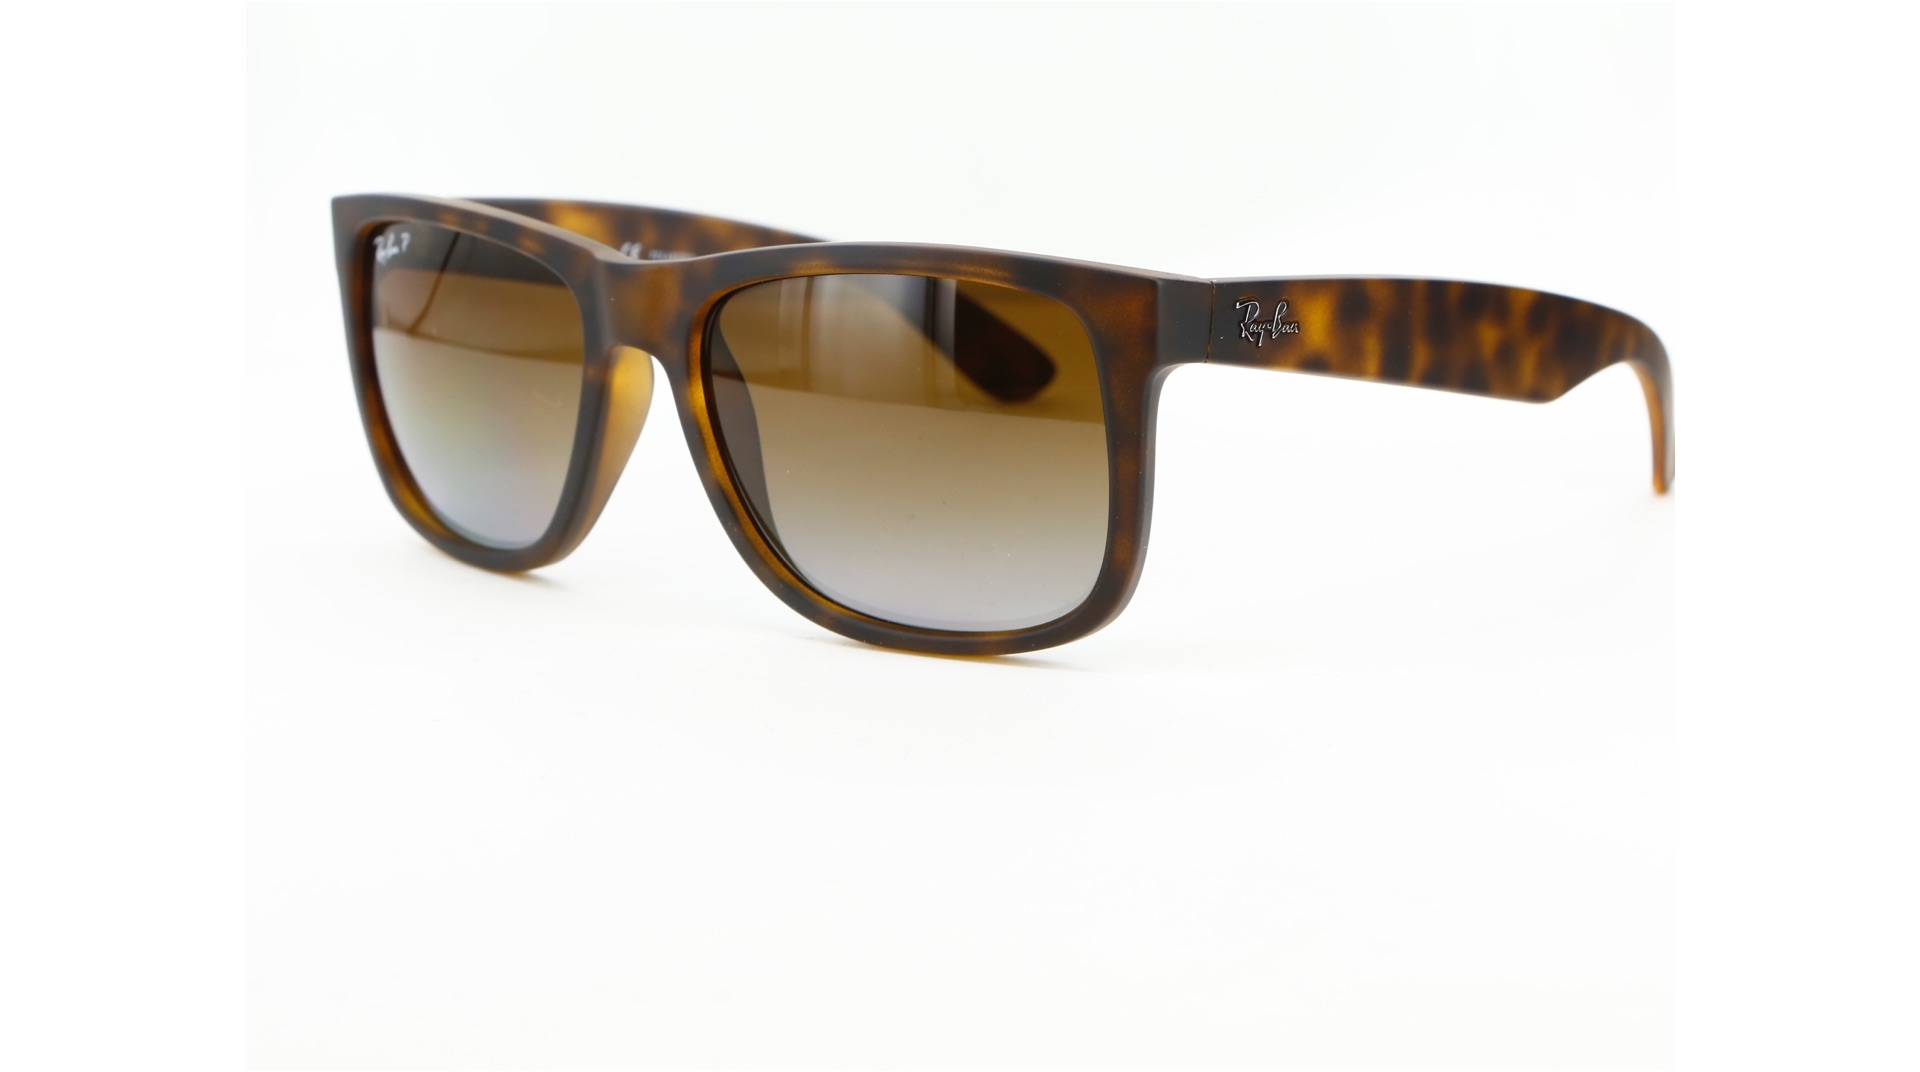 Ray-Ban - ref: 74761